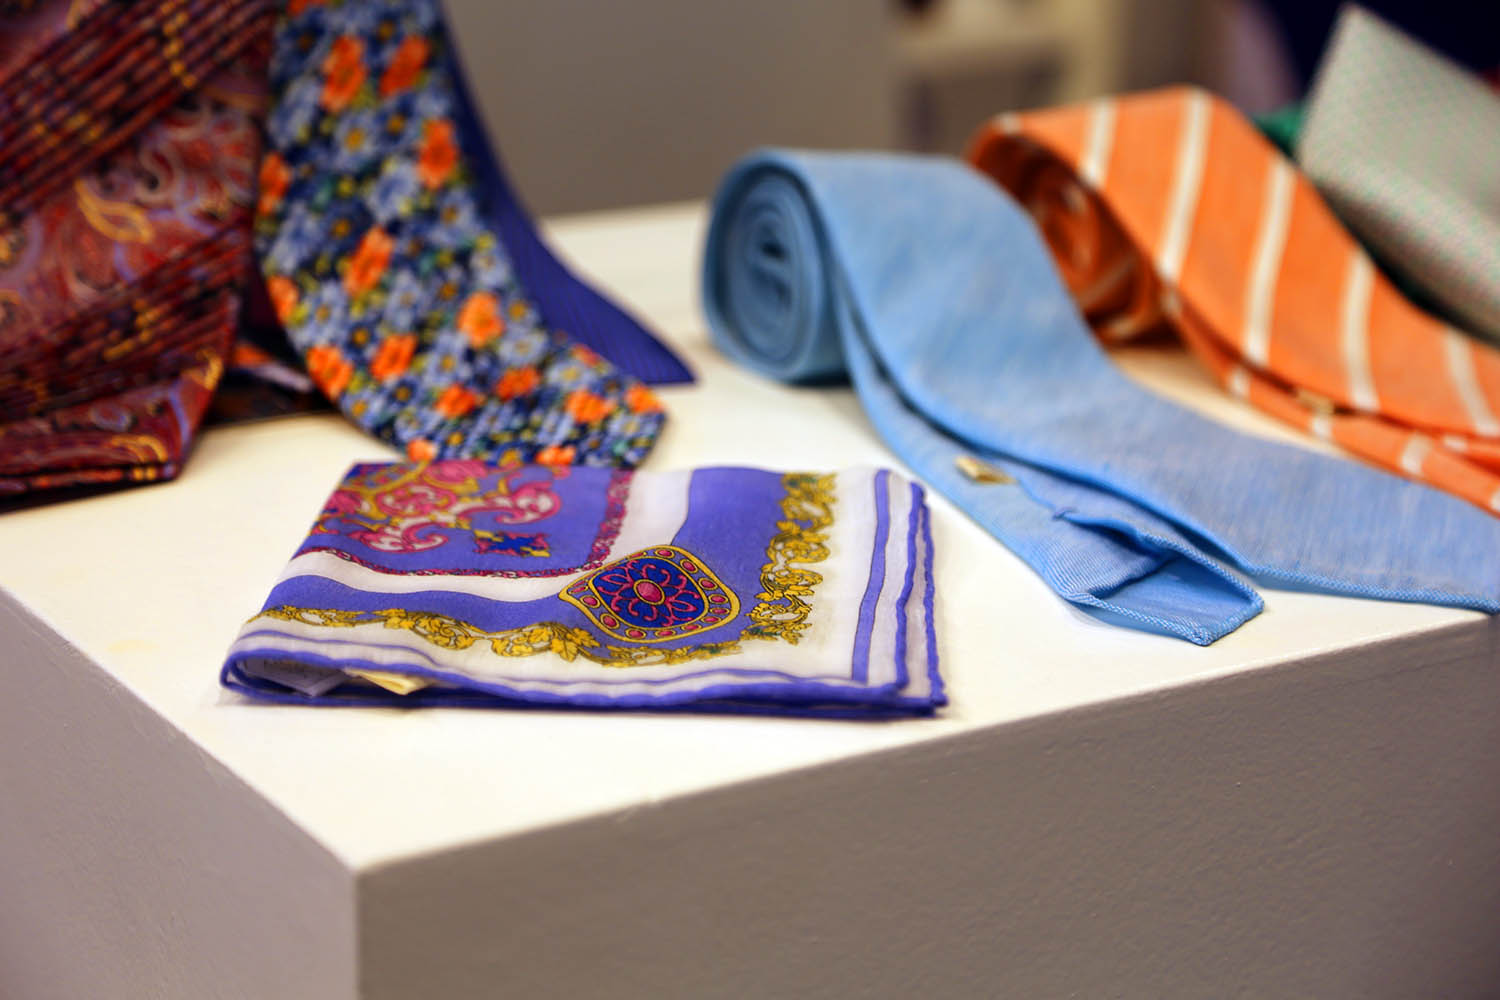 Ties and pocket square on display table.